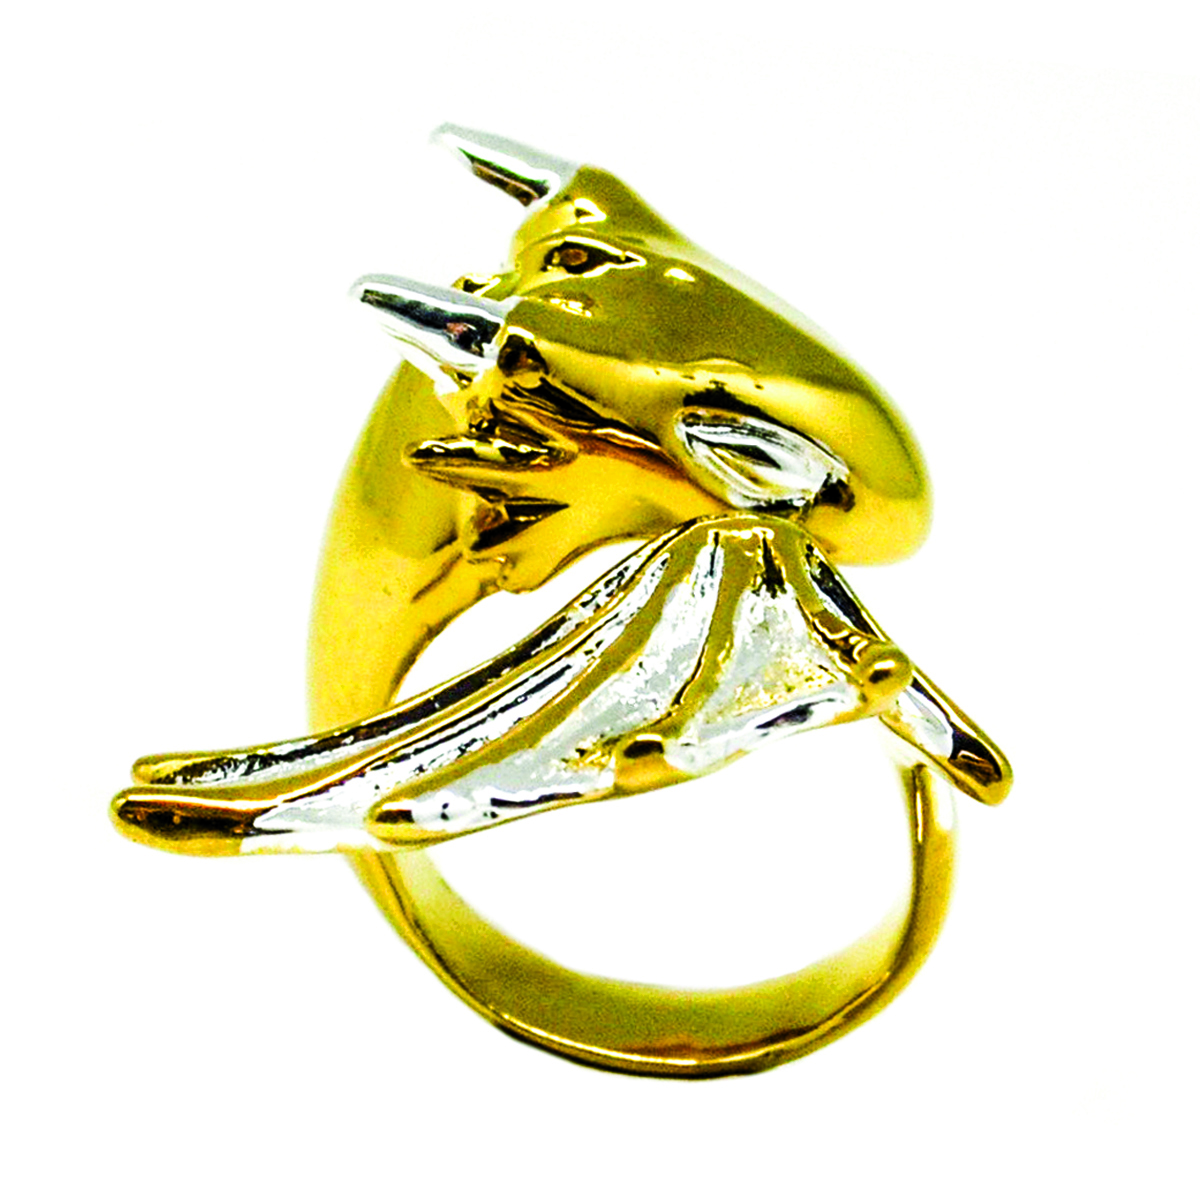 Gold Warrior Dragon Ring_Monvatoo#2